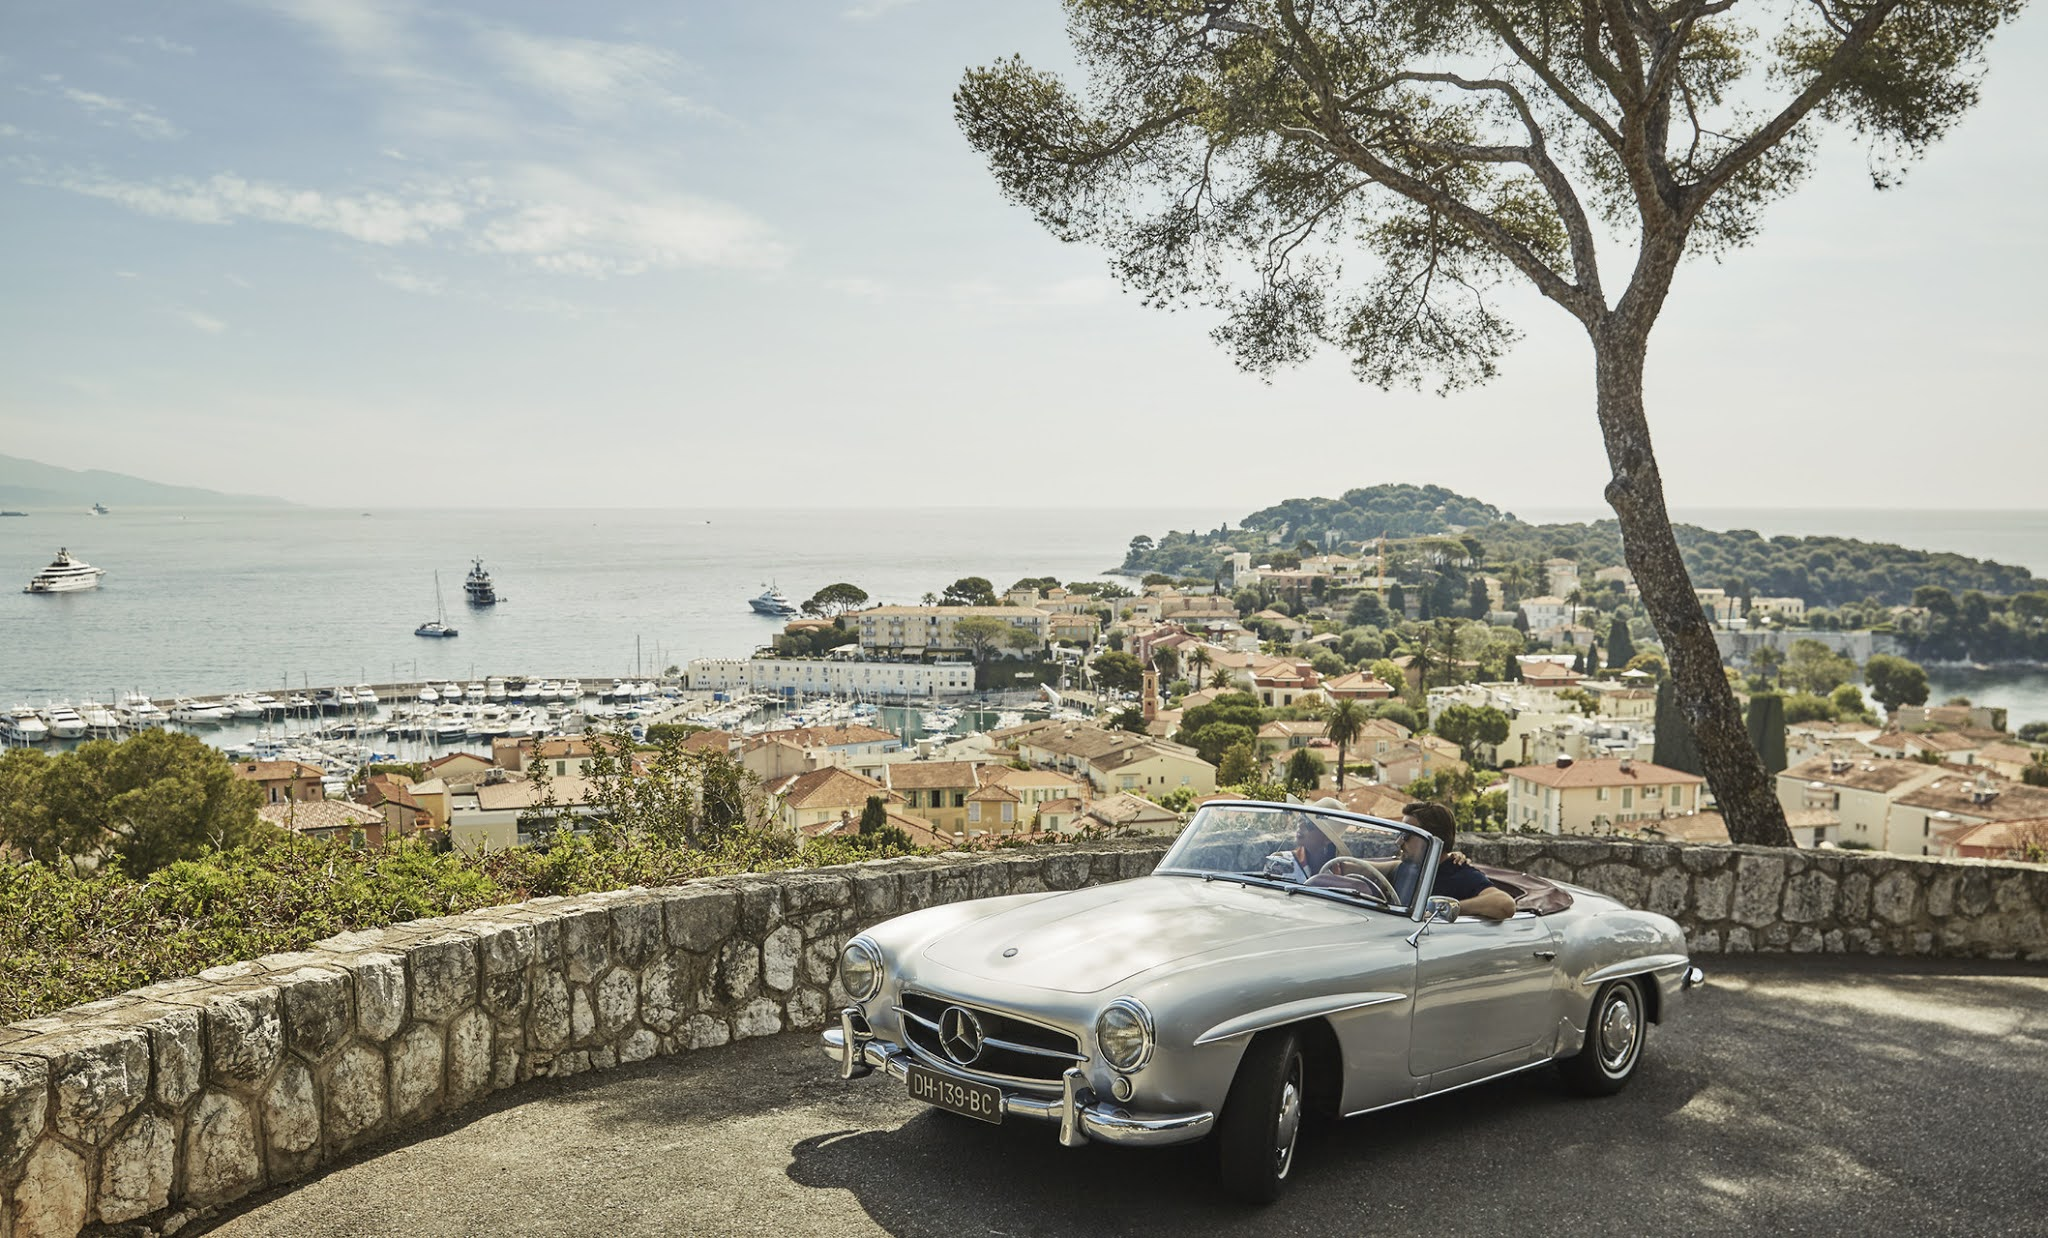 Take the Scenic Route with Four Seasons and Uncover Six Iconic Road Trips to Ignite the Senses